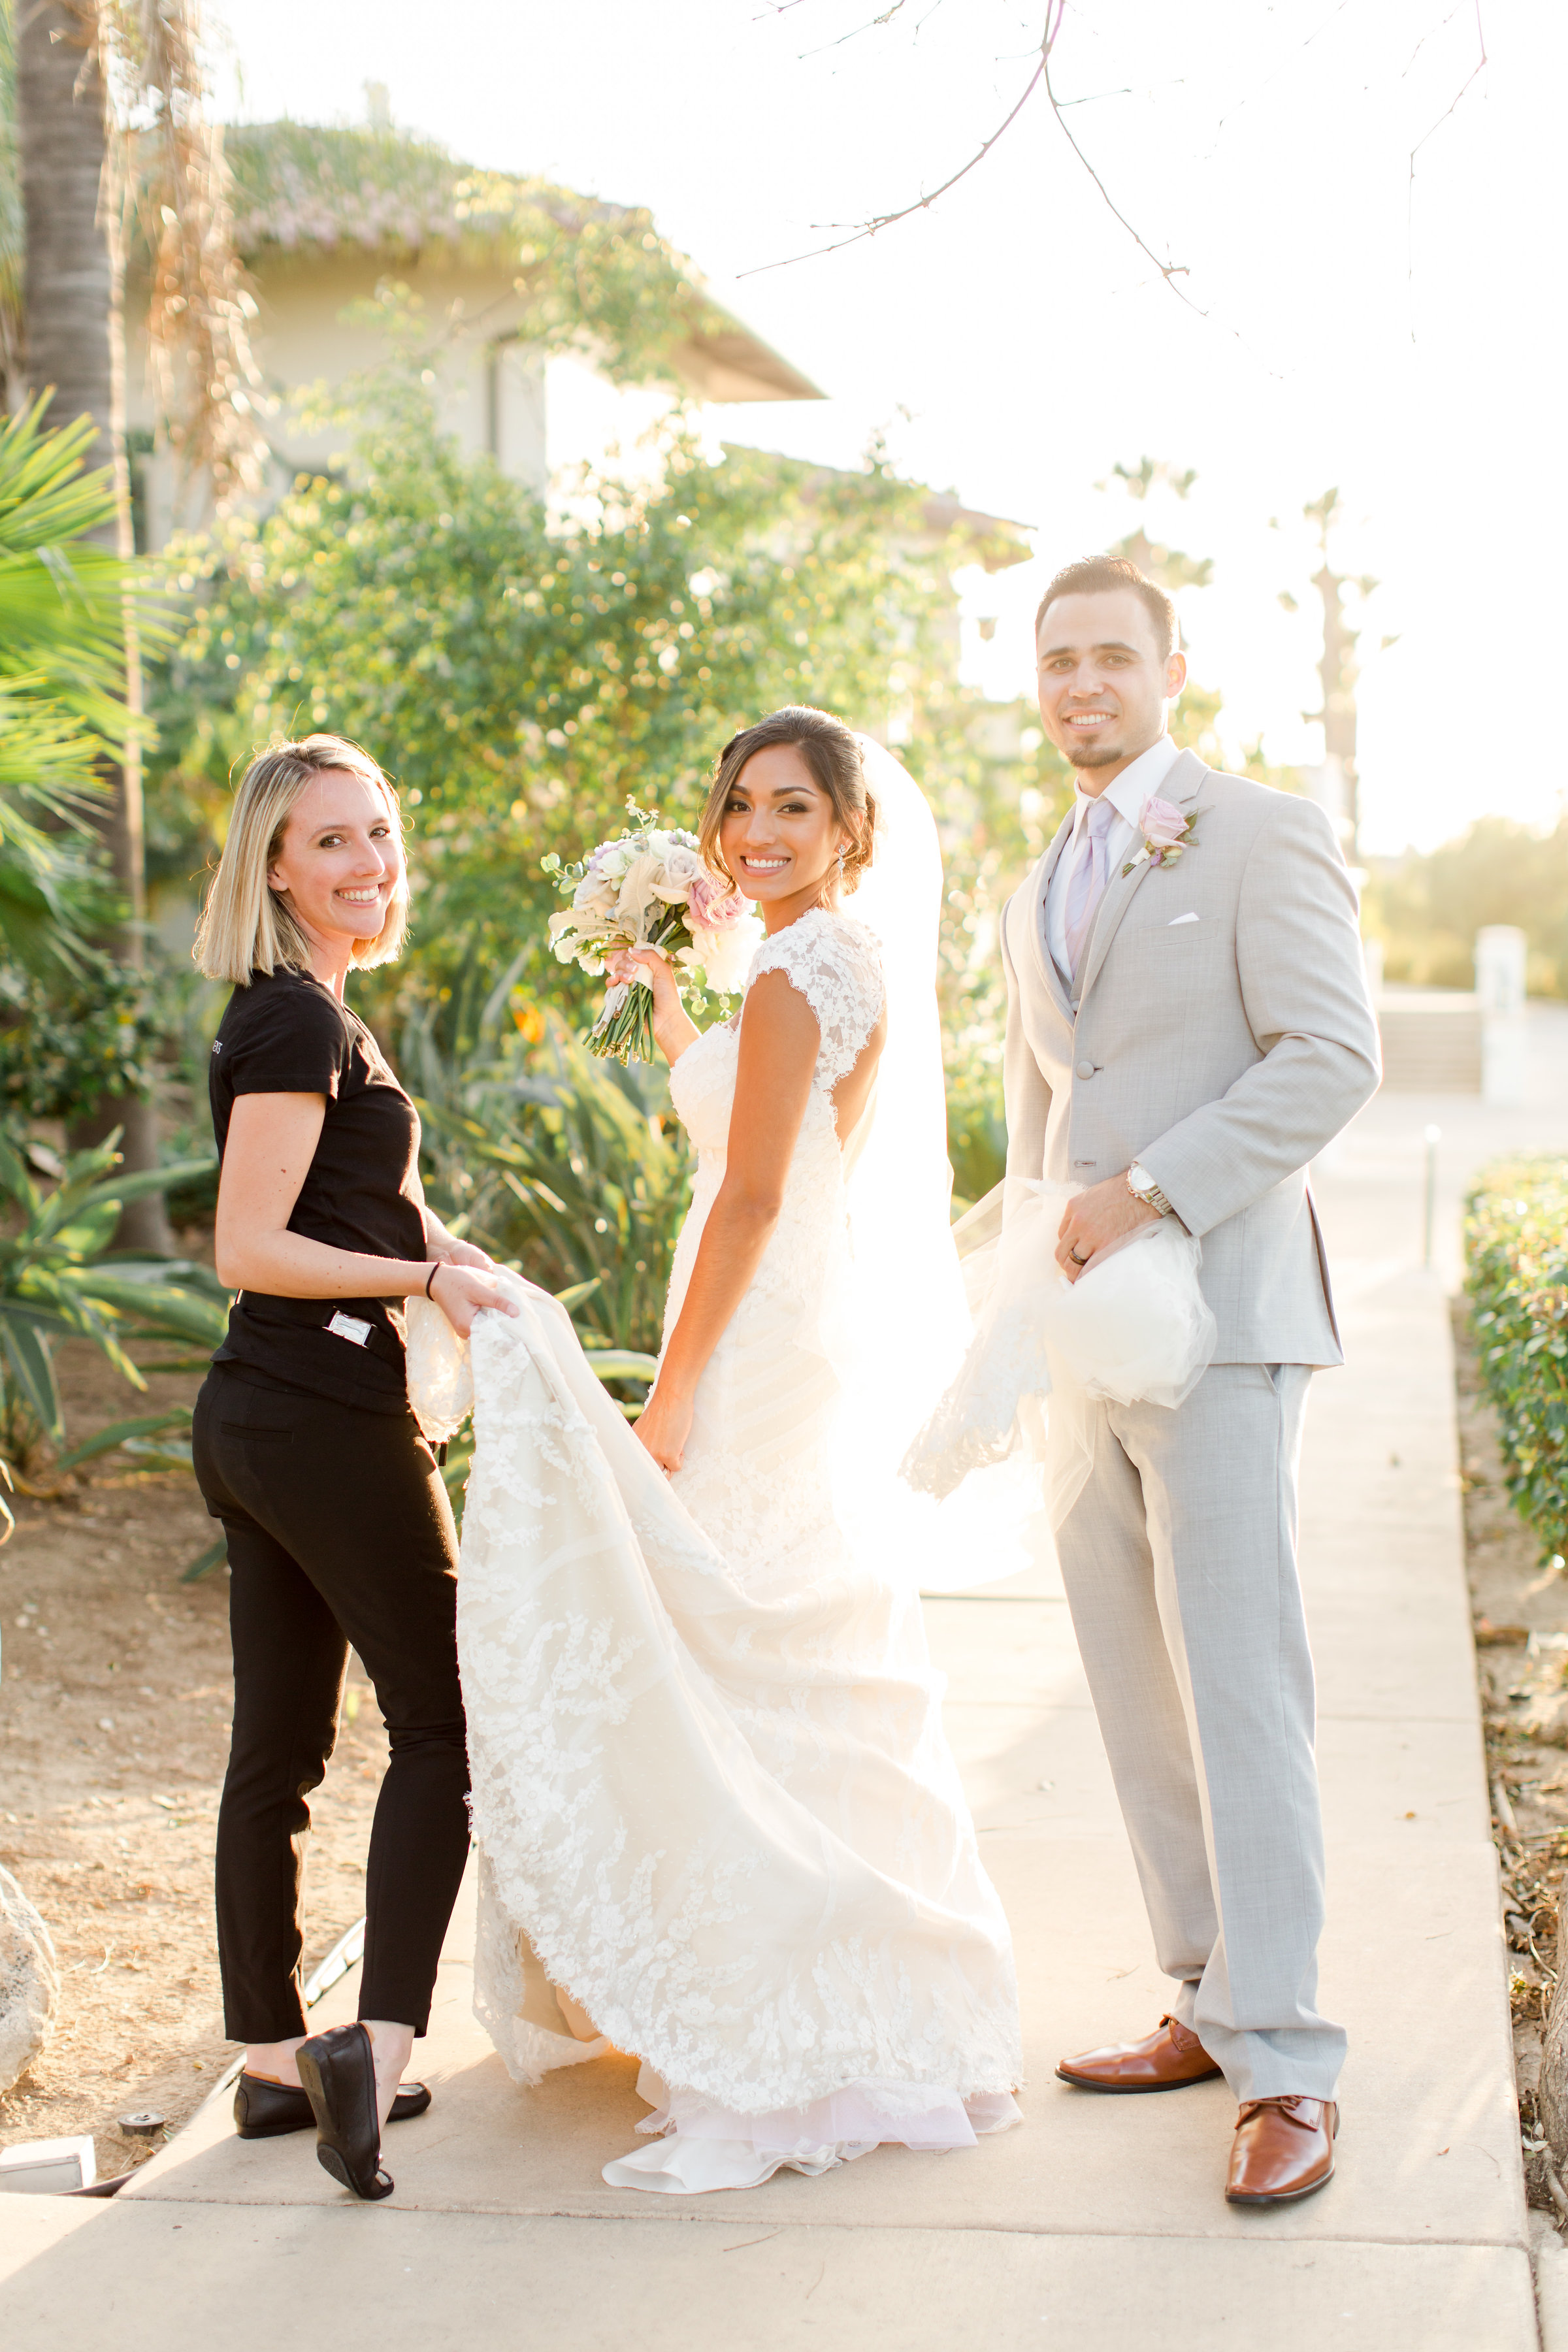 AngelicaMariePhotography_AlvarezWedding_SpanishHillsCountryClub_VenturaCountyWeddingPhotographer_709.JPG